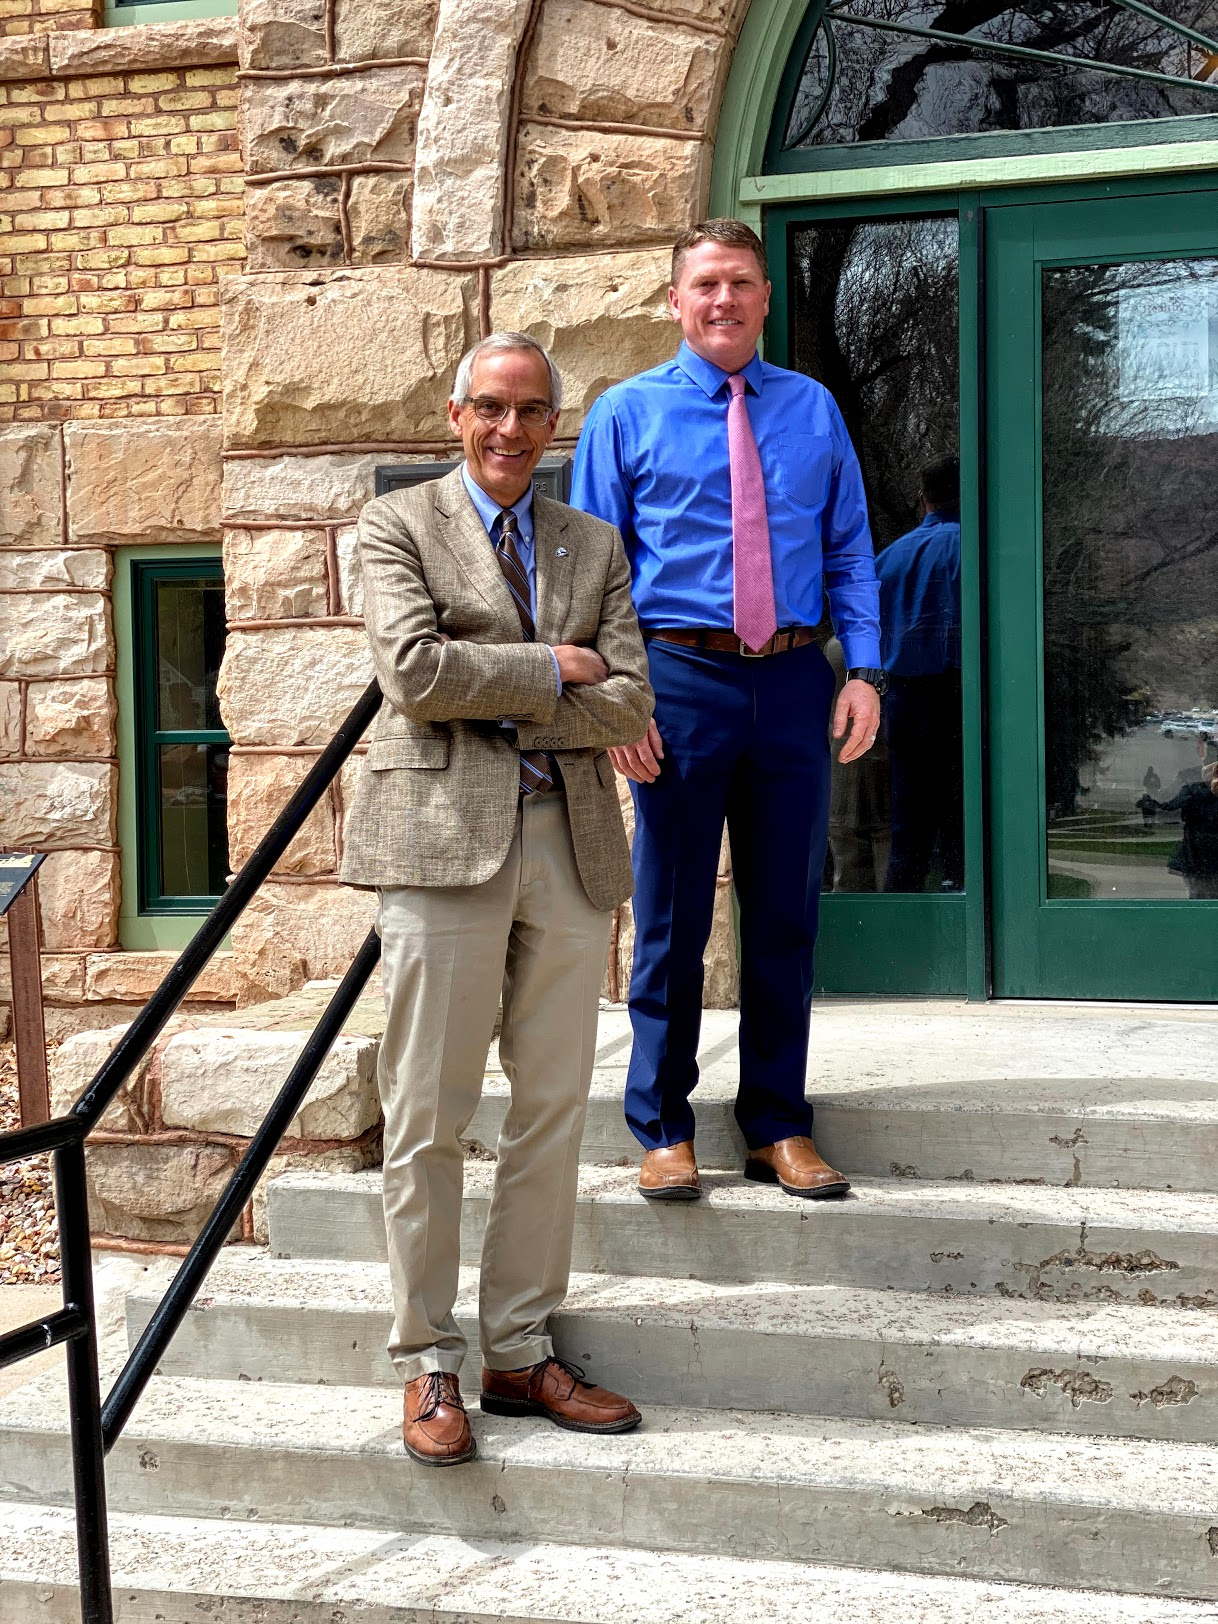 Southern Utah University President Scott Wyatt, left, and Provost Jon Anderson are architects of a no-frills, all-inclusive $9,000 bachelor's degree.